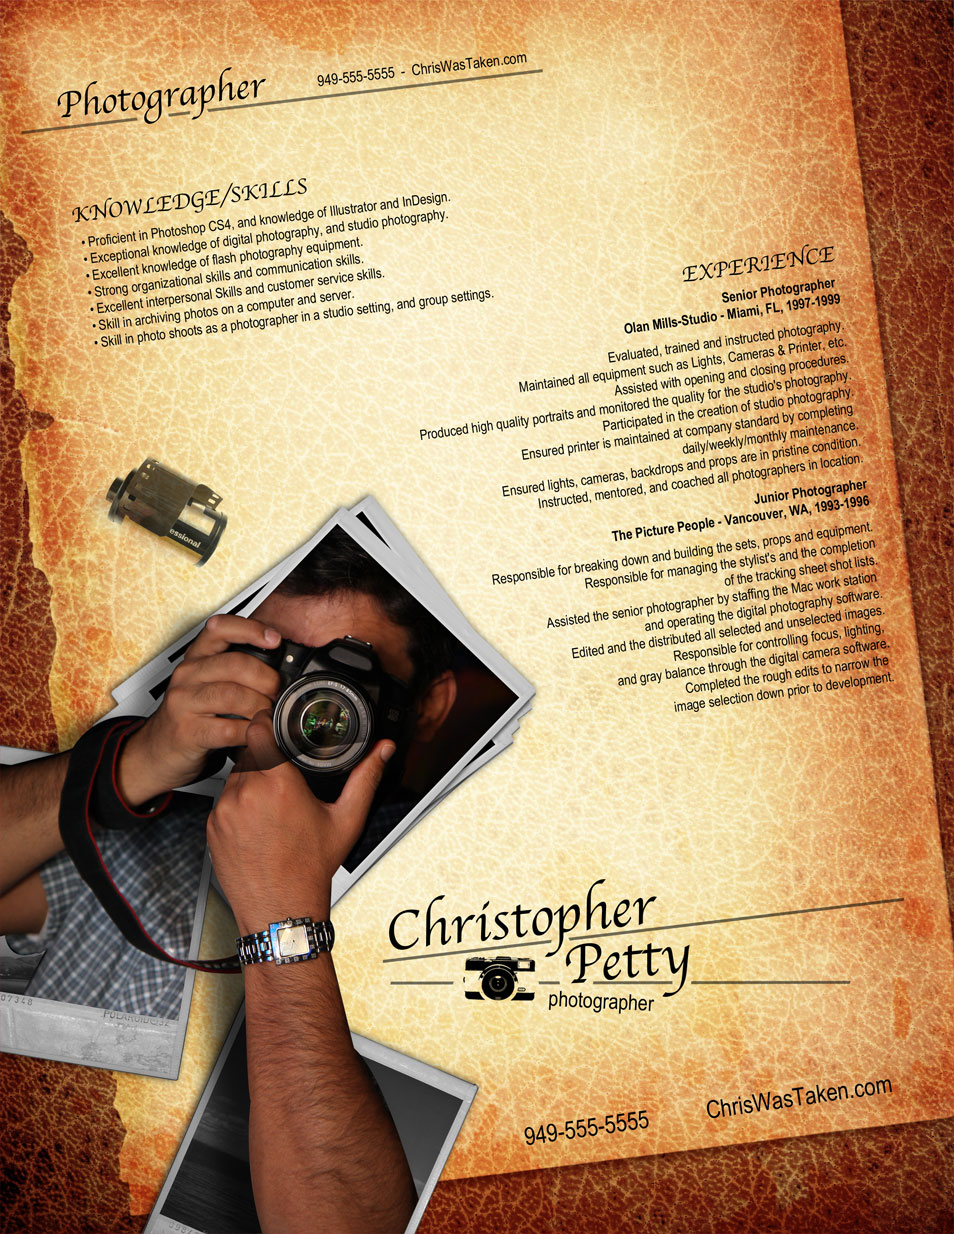 Opposenewapstandardsus  Wonderful  Creative Cvresume Design Inspiration With Foxy Resume Photographer With Astounding Education Resume Sample Also Steps To Writing A Resume In Addition How To Make A Free Resume Step By Step And Loss Prevention Manager Resume As Well As Actor Resume Format Additionally Cover Pages For Resumes From Cssauthorcom With Opposenewapstandardsus  Foxy  Creative Cvresume Design Inspiration With Astounding Resume Photographer And Wonderful Education Resume Sample Also Steps To Writing A Resume In Addition How To Make A Free Resume Step By Step From Cssauthorcom